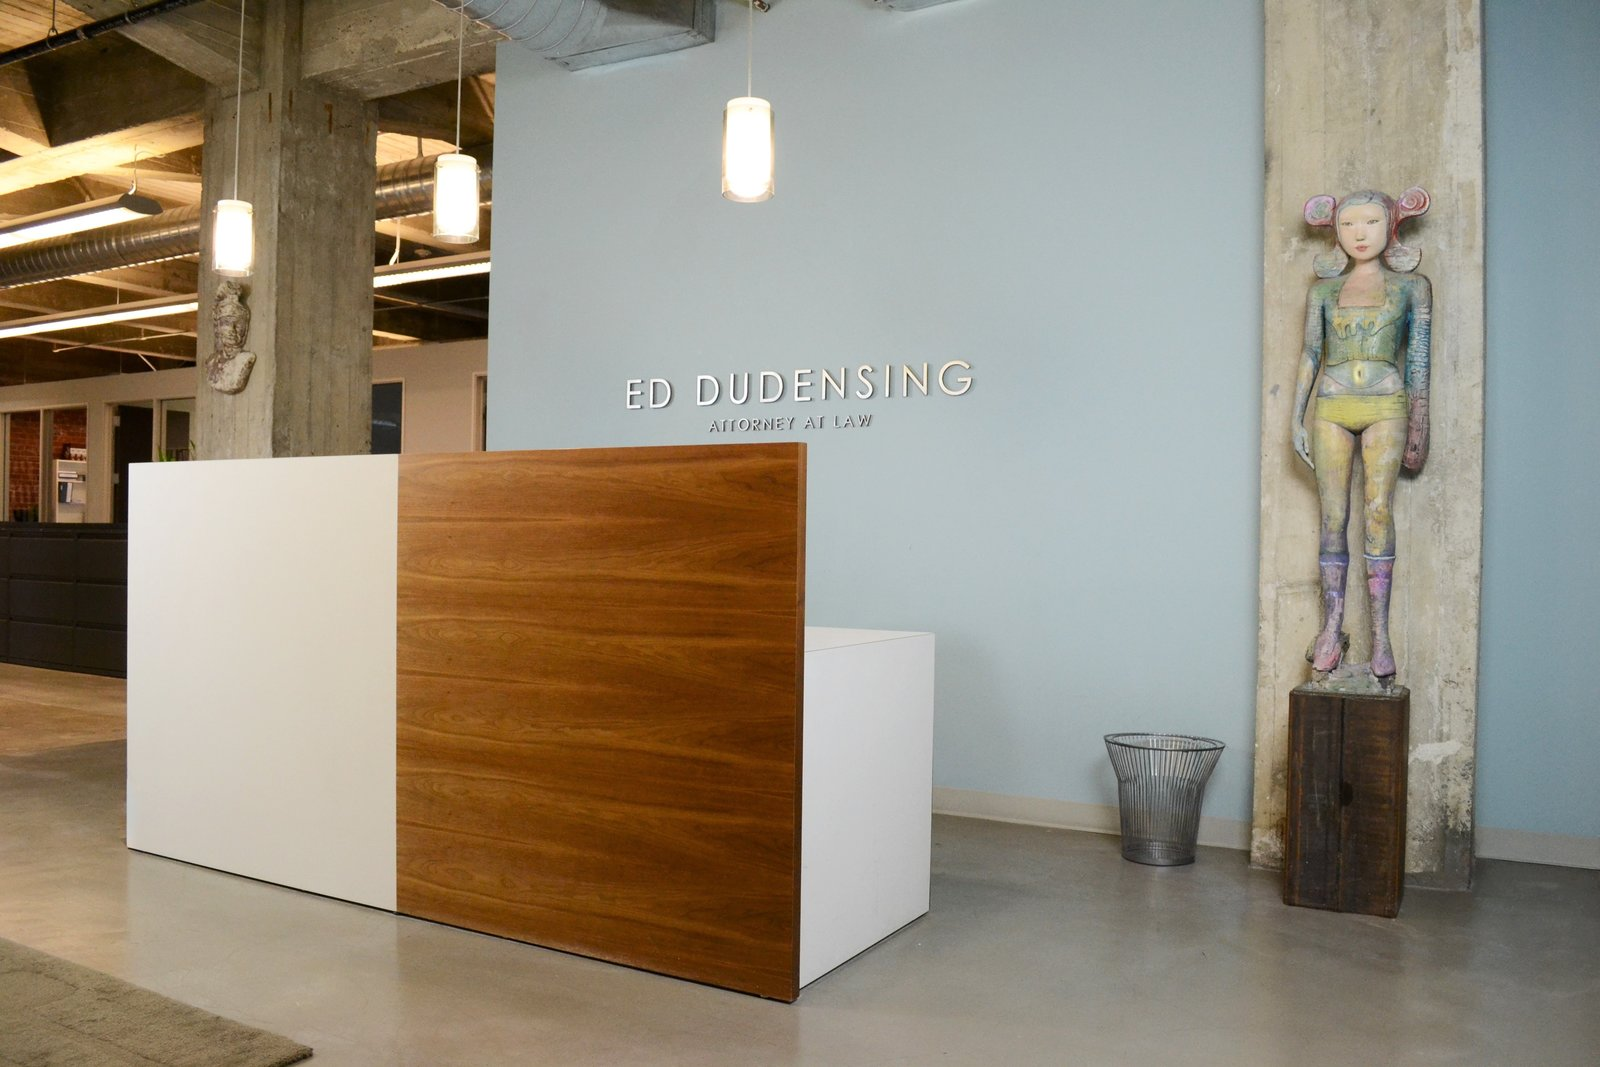 Reception Desk, Modern Law Firm By Jill Dudensing Lifestyle + Design Photo  3 Of 9